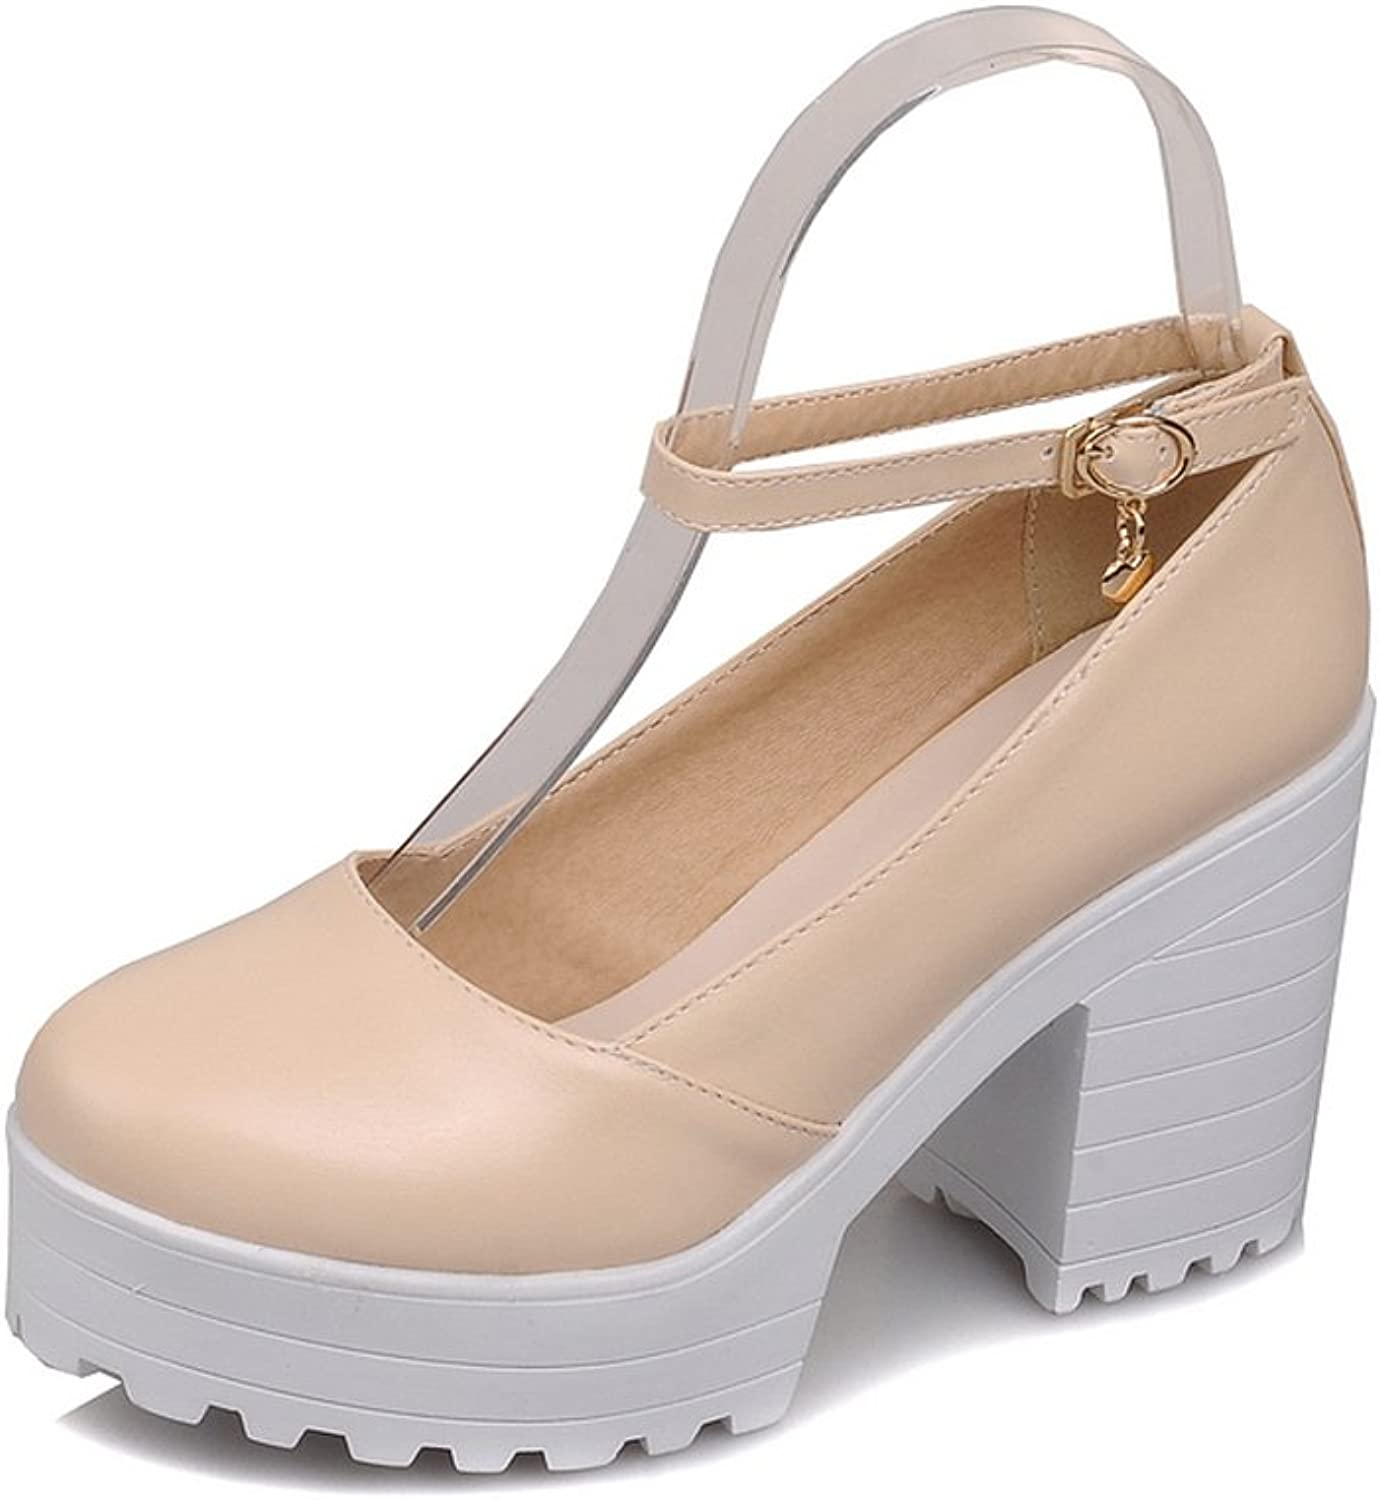 Lucksender Womens Round Toe Platform Chunky Heels Ankle Strap Mary Janes Pumps shoes